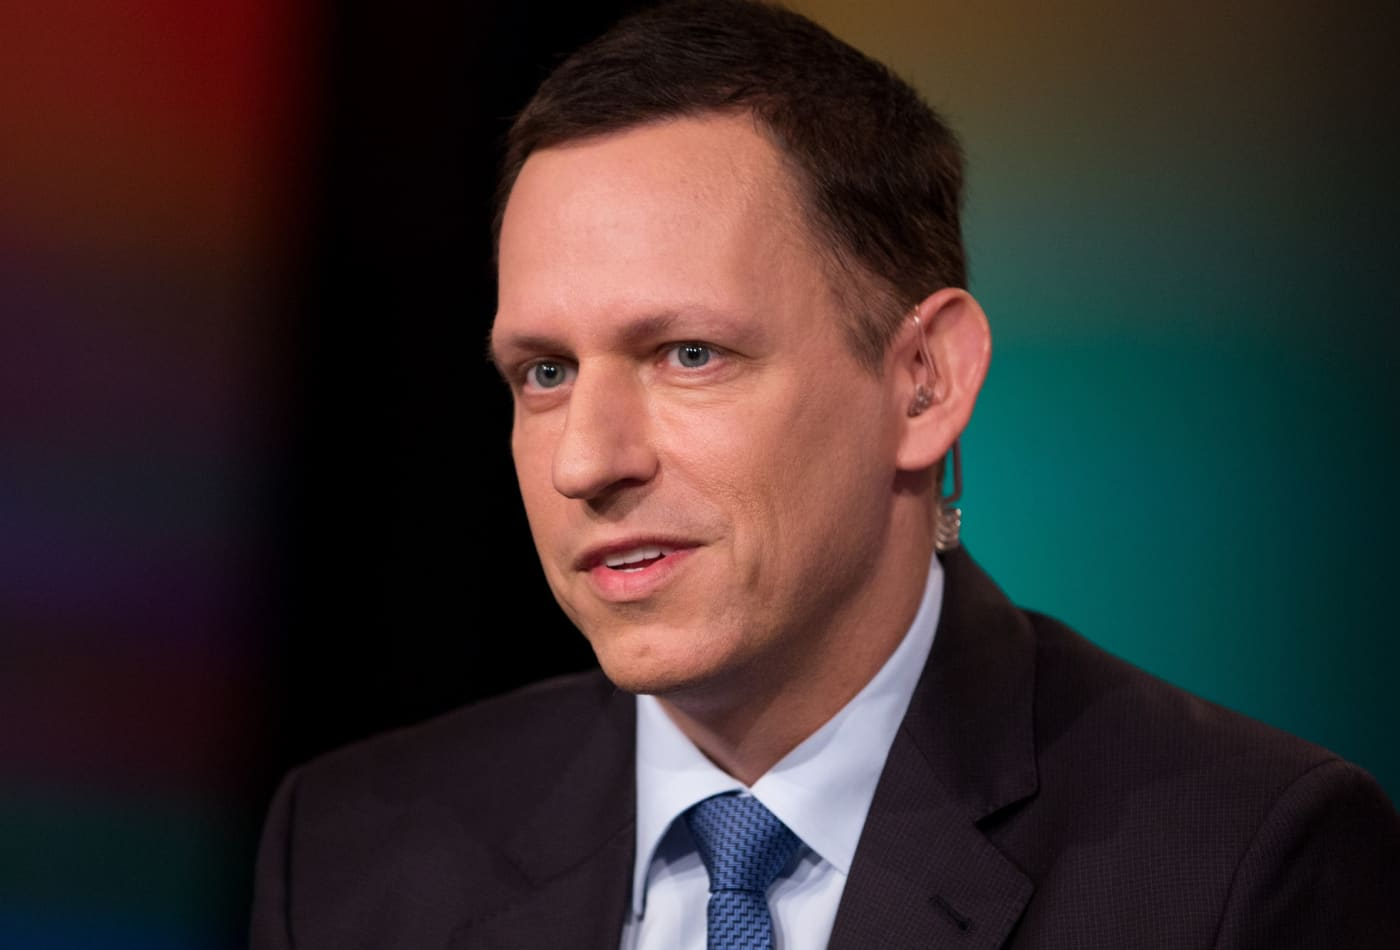 Peter Thiel reportedly pushed Facebook not to vet fake political ads